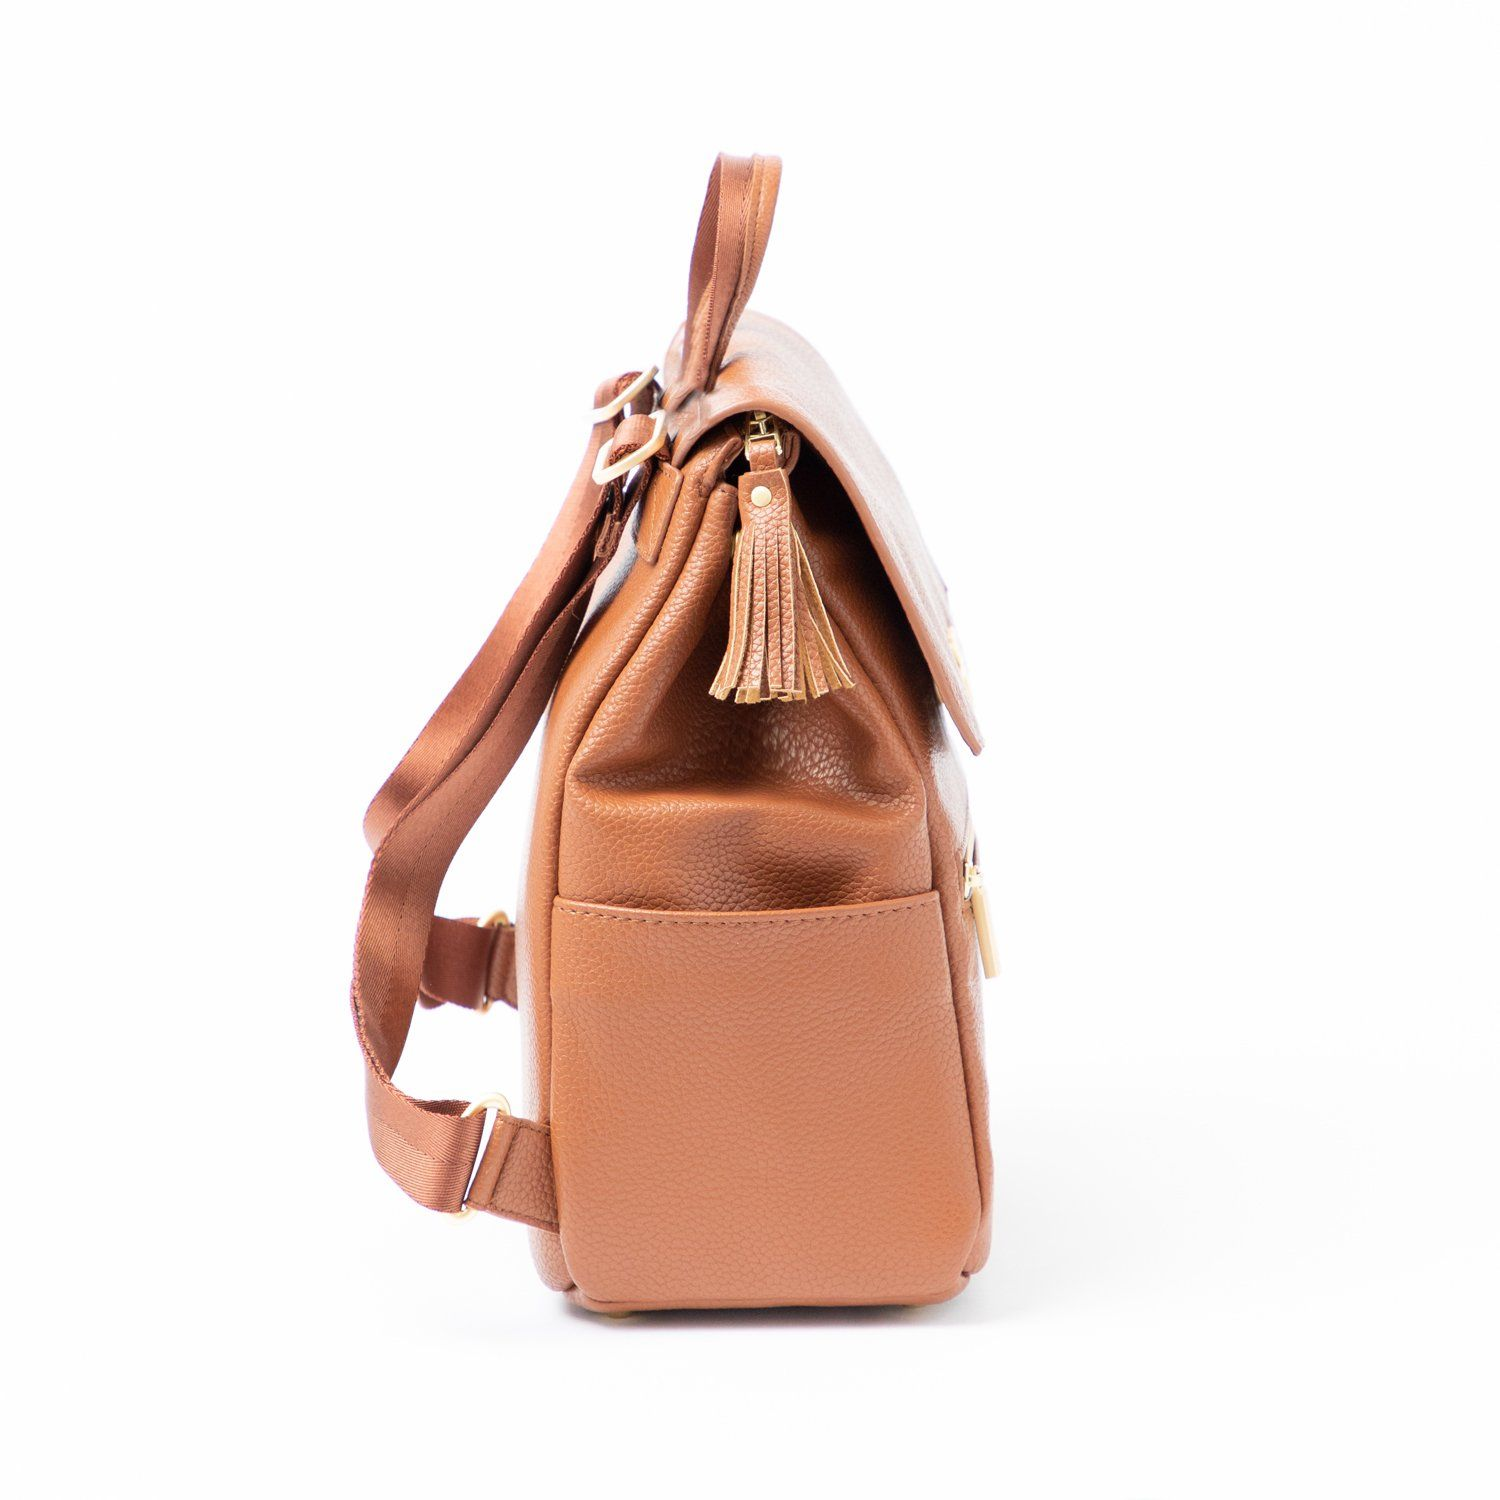 Cognac Classic Mini Bag | Pre-Order Mini Classic Diaper Bag Bags